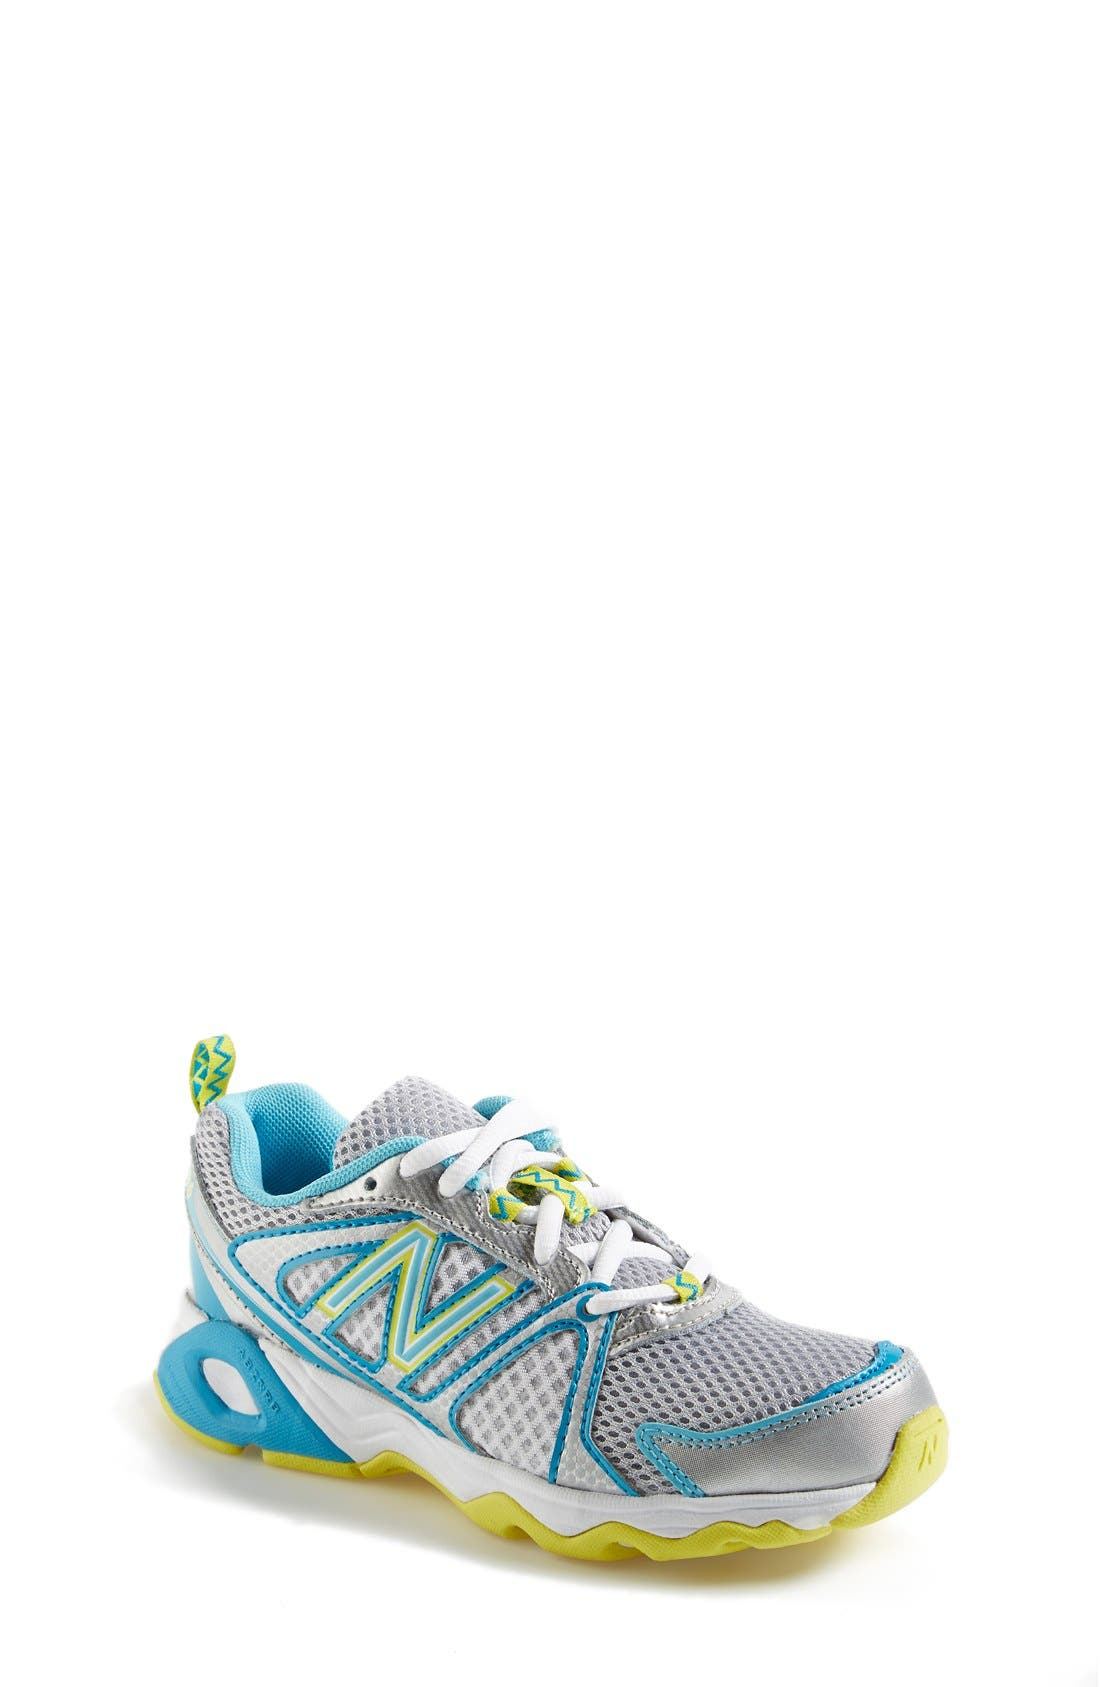 Alternate Image 1 Selected - New Balance '696' Athletic Shoe (Toddler, Little Kid & Big Kid)